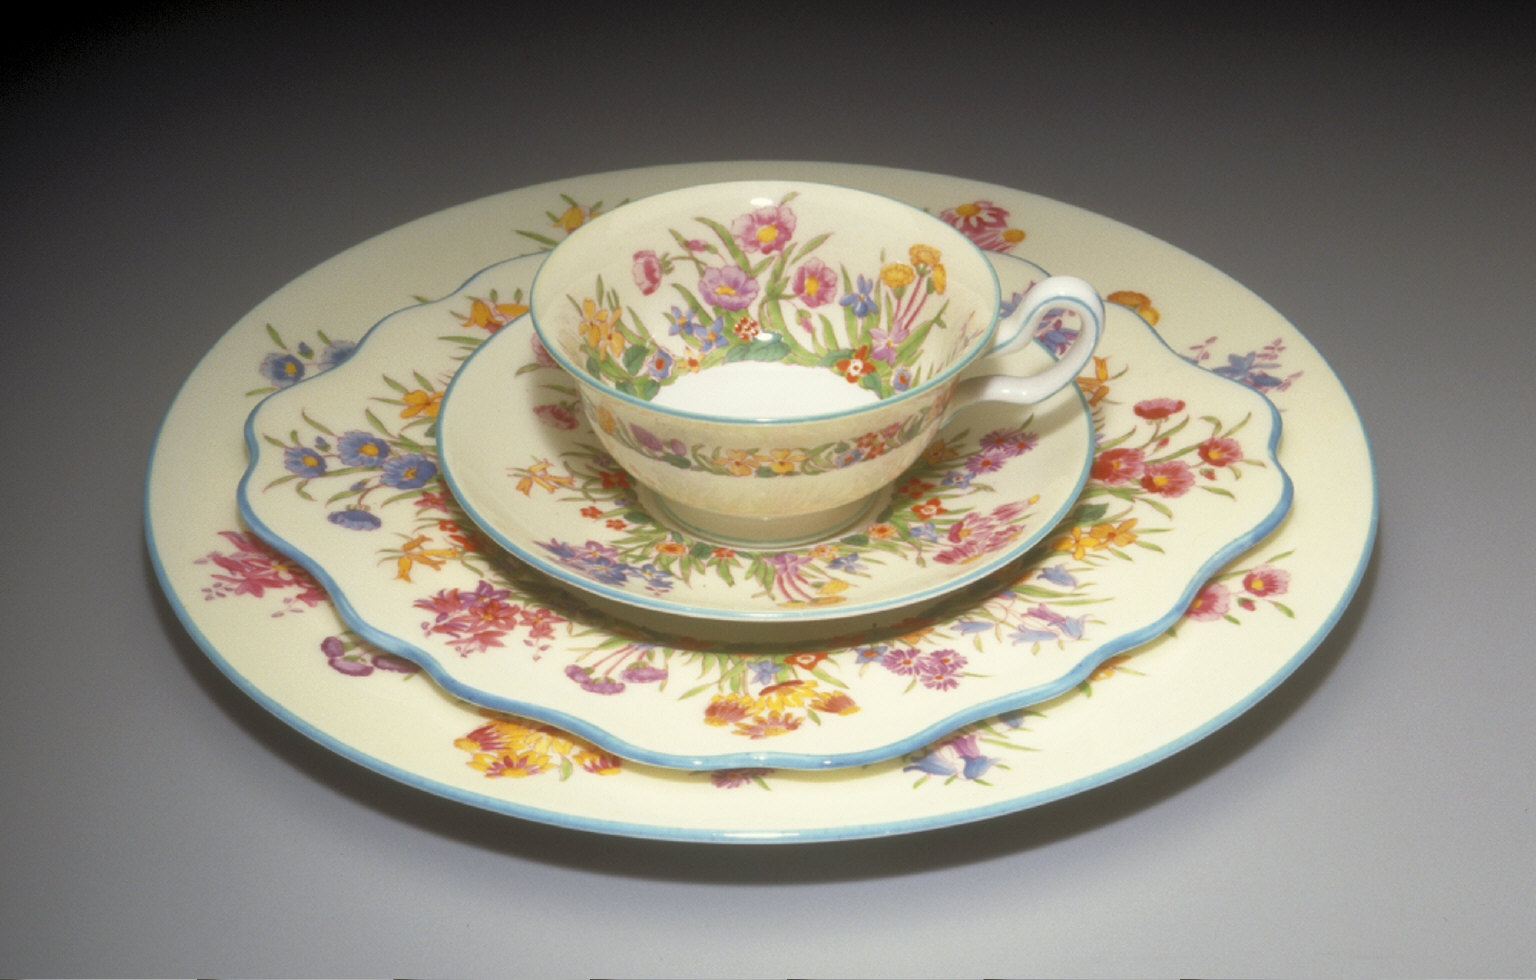 'Lincoln' shape plate with 'Prairie Flowers' pattern